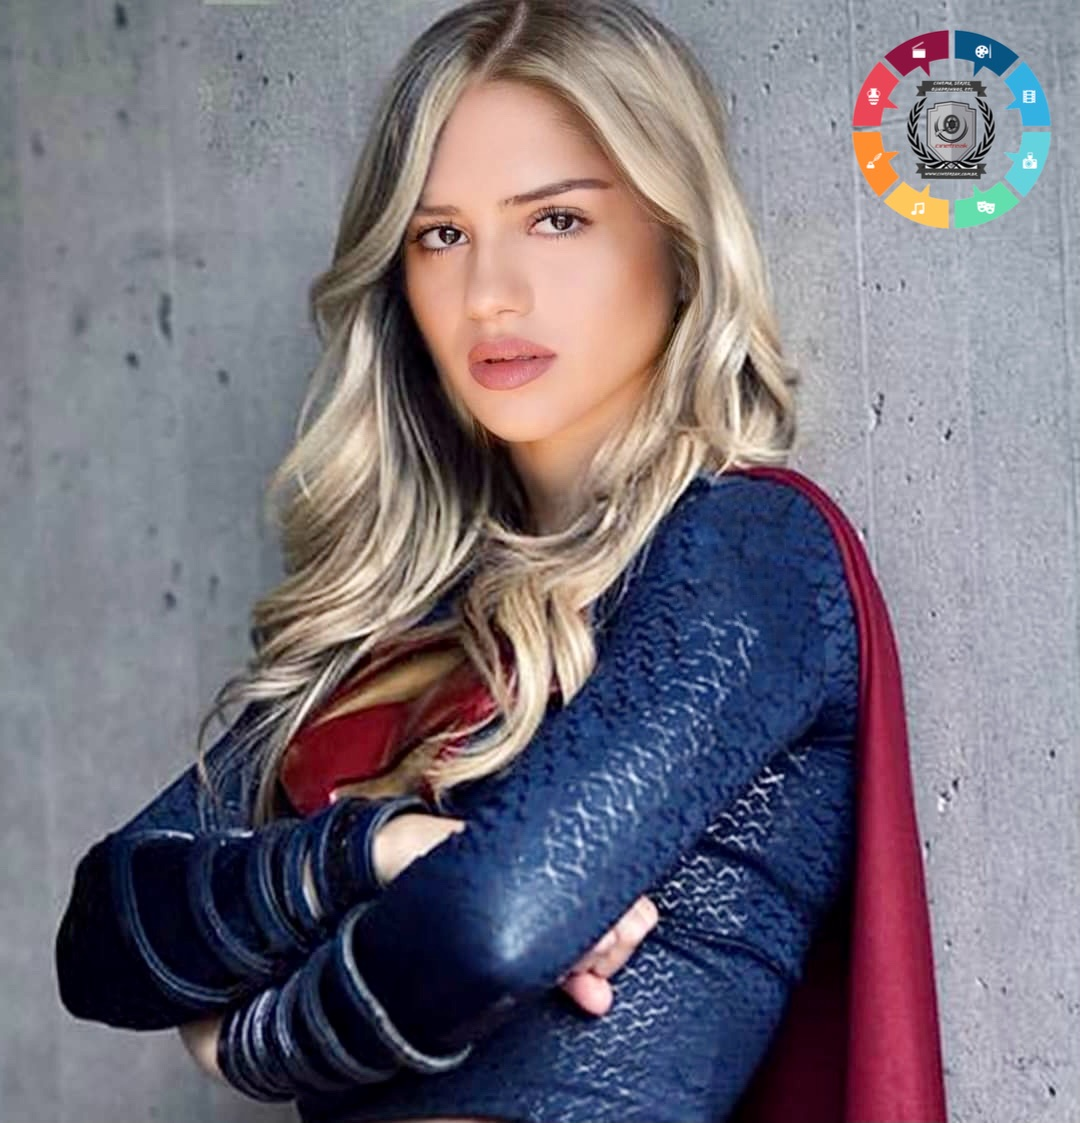 Supergirl vai ser interpretada por Sasha Calle no cinema 3